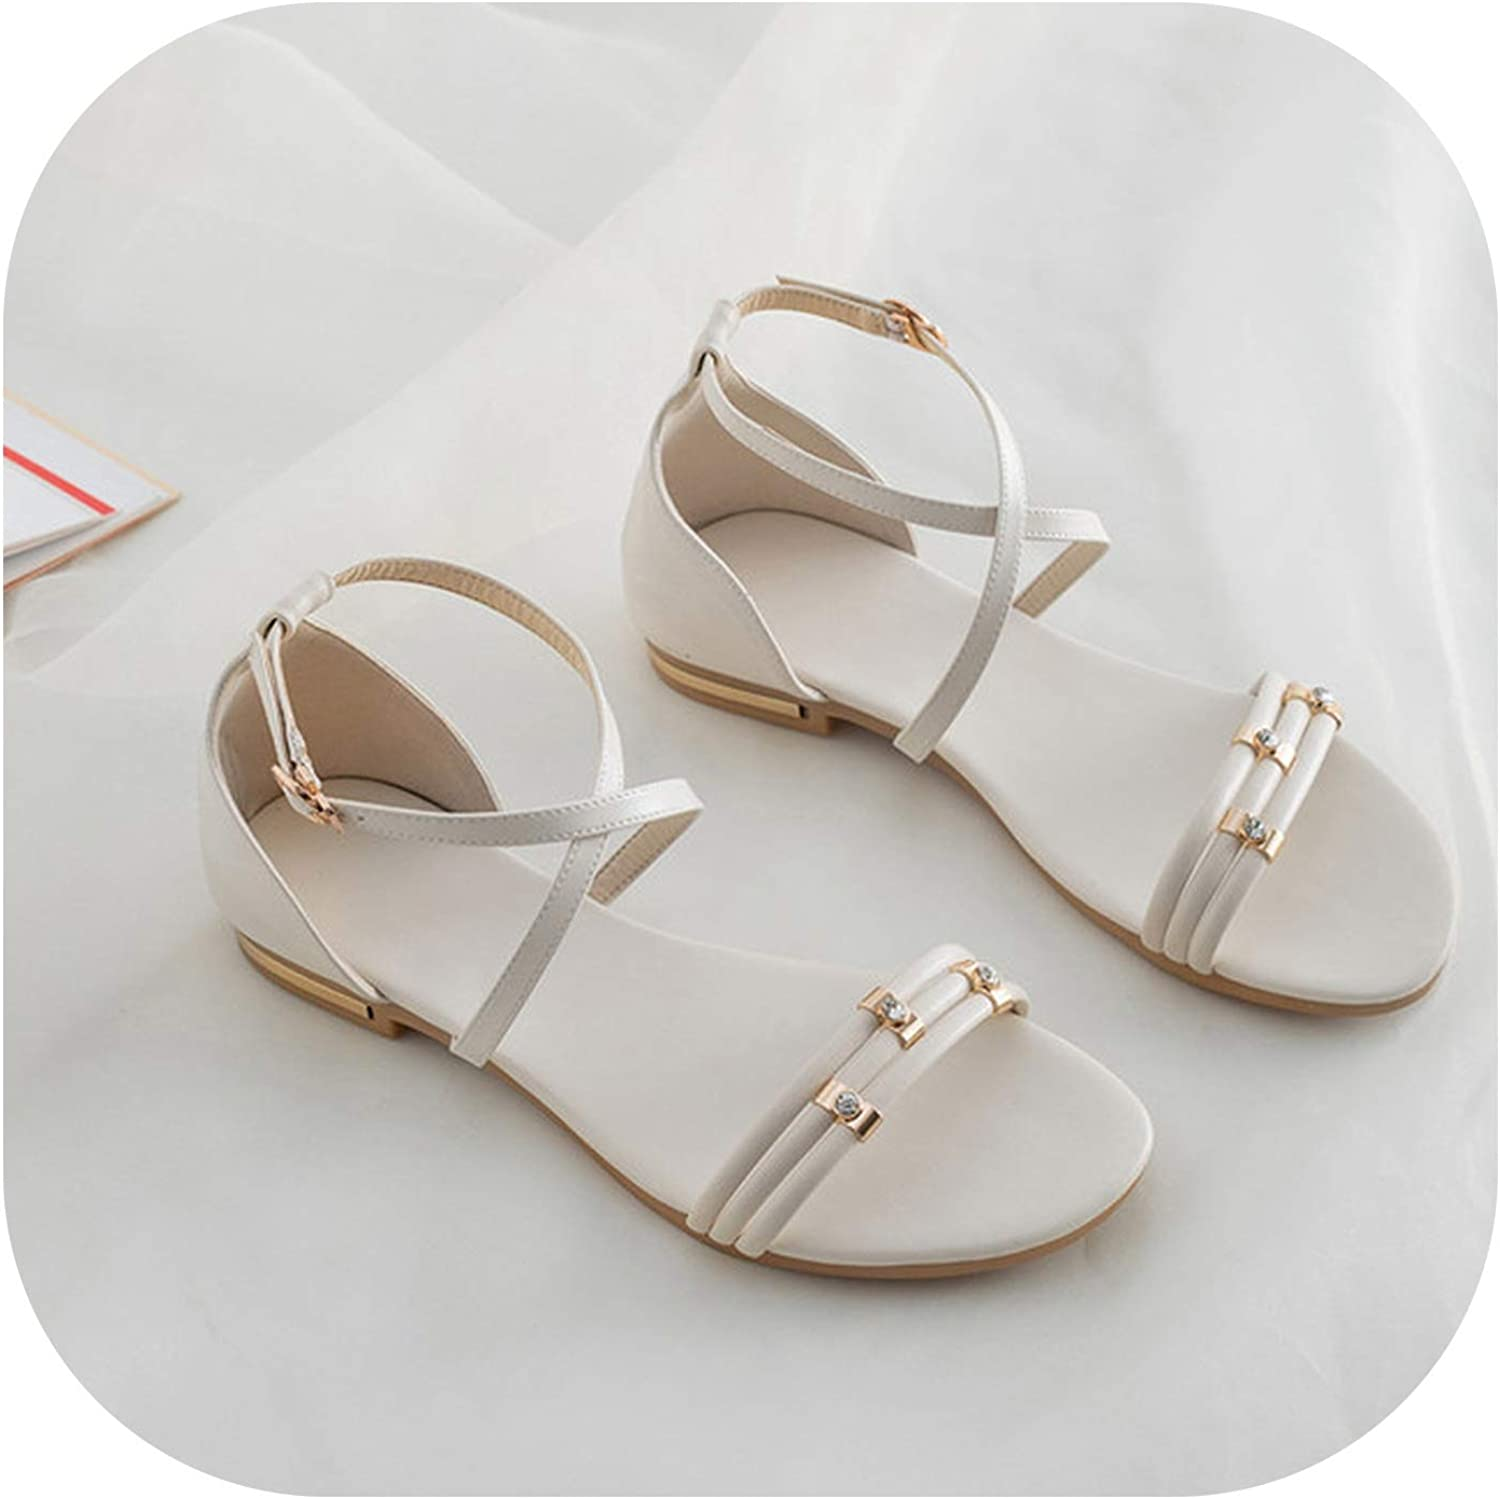 YuJi Women shoes Natural Genuine Leather Crystal Flat shoes Cow Leather Cross Strap Sandals